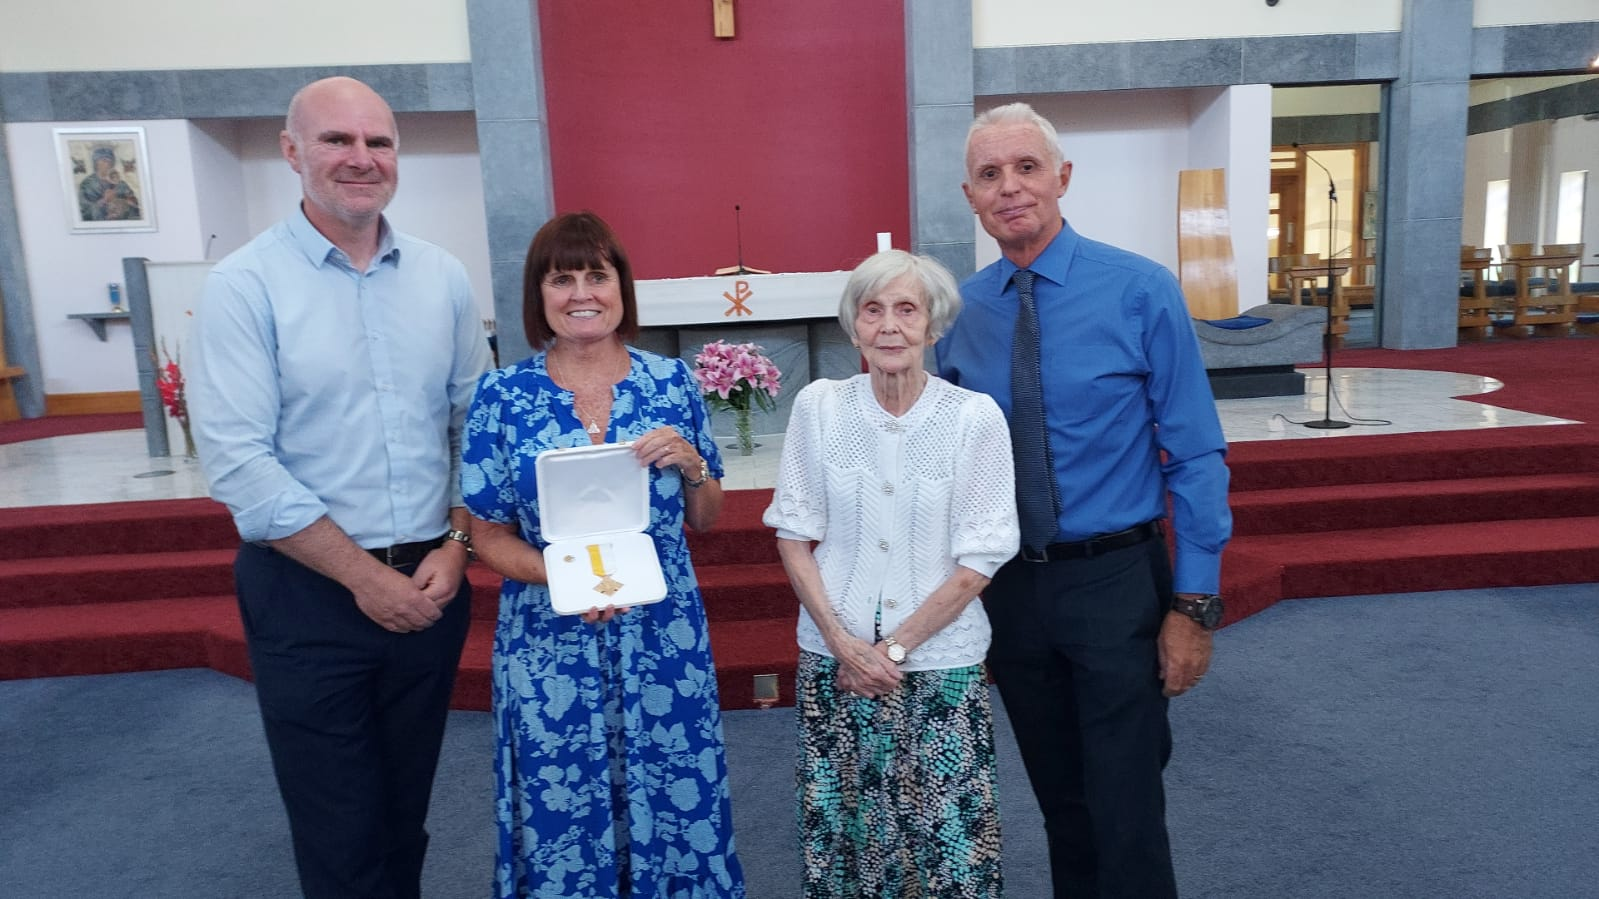 CONGRATULATIONS: Holy Trinity Primary School Principal, Fiona Enright Boyd, is joined by Father Brendan Mulhall, left, her mum, Phyllis Enright, and her husband, Joe Boyd, as she received the Benemerenti Medal